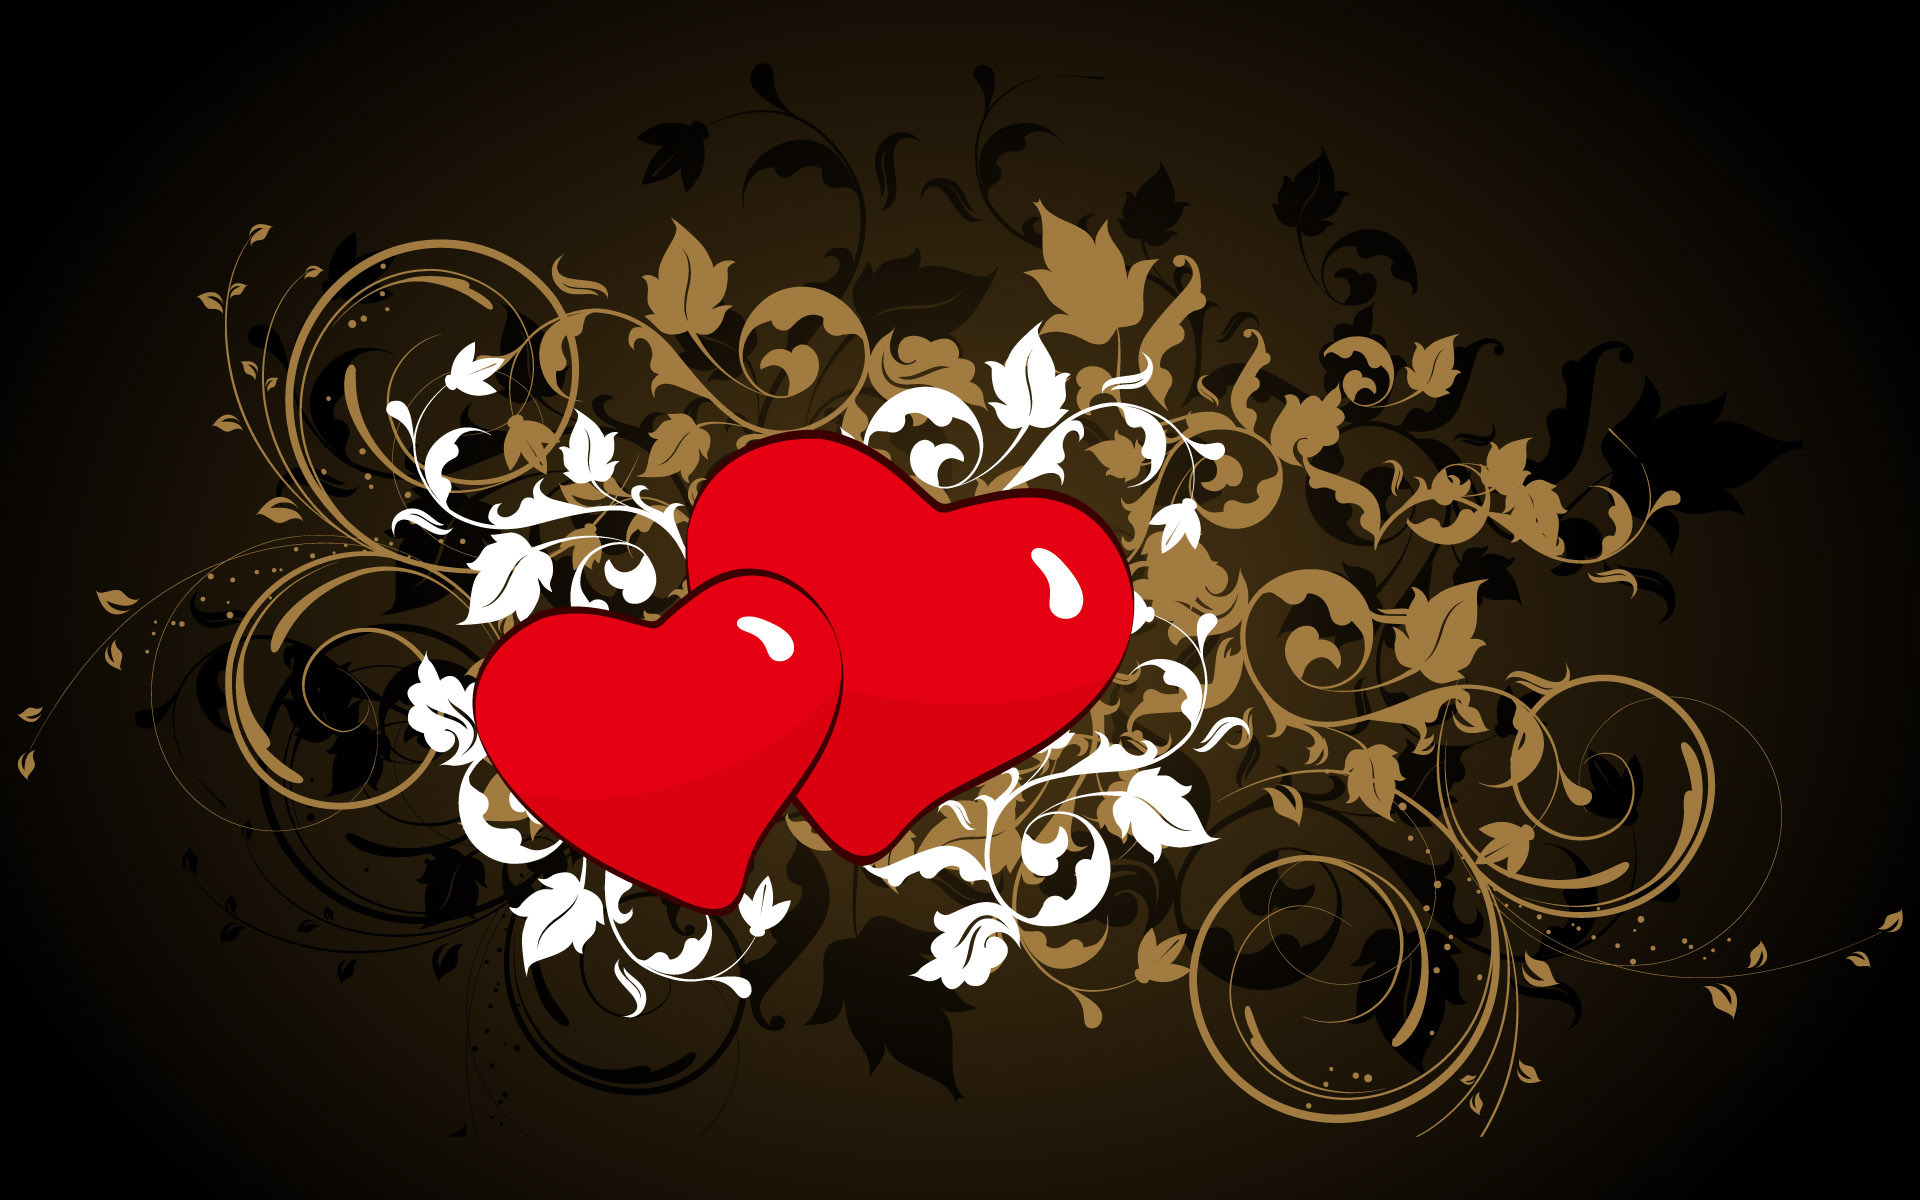 Love Wallpaper Full Hd Size : Love Wallpaper - Love Wallpaper (4187474) - Fanpop